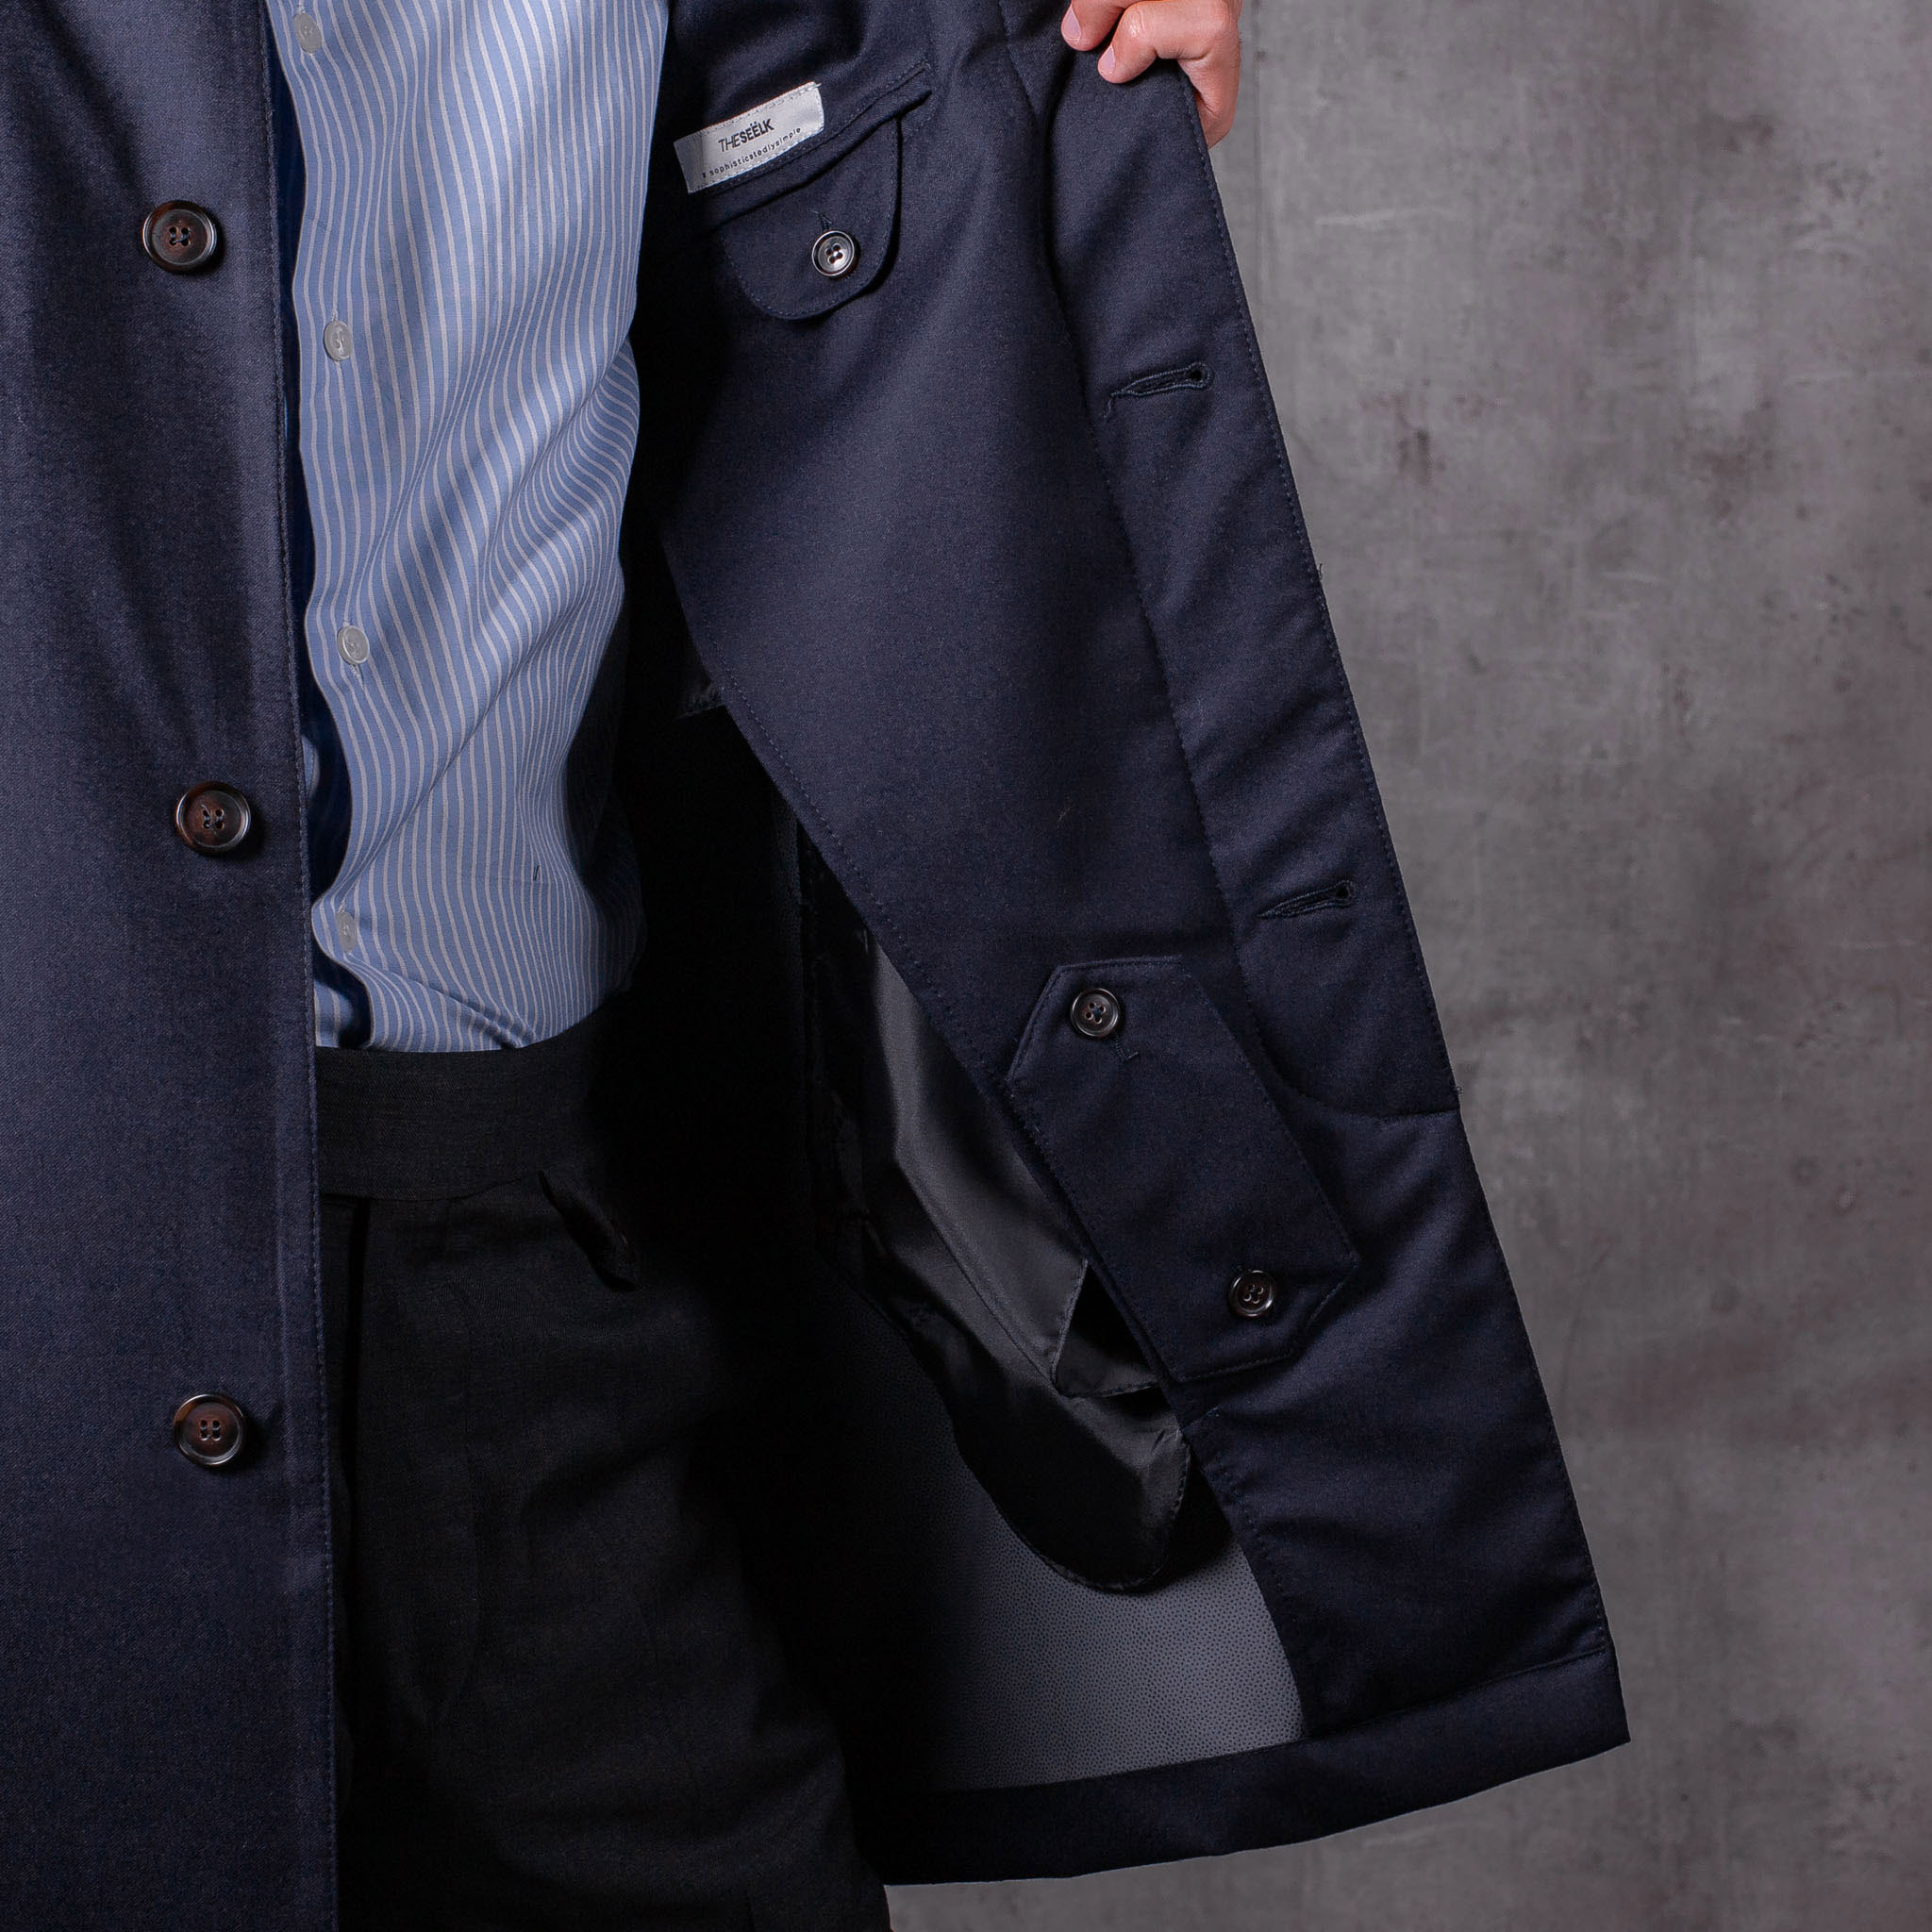 RAINCOAT-GABARDINA-01-01-The-Seelk-11